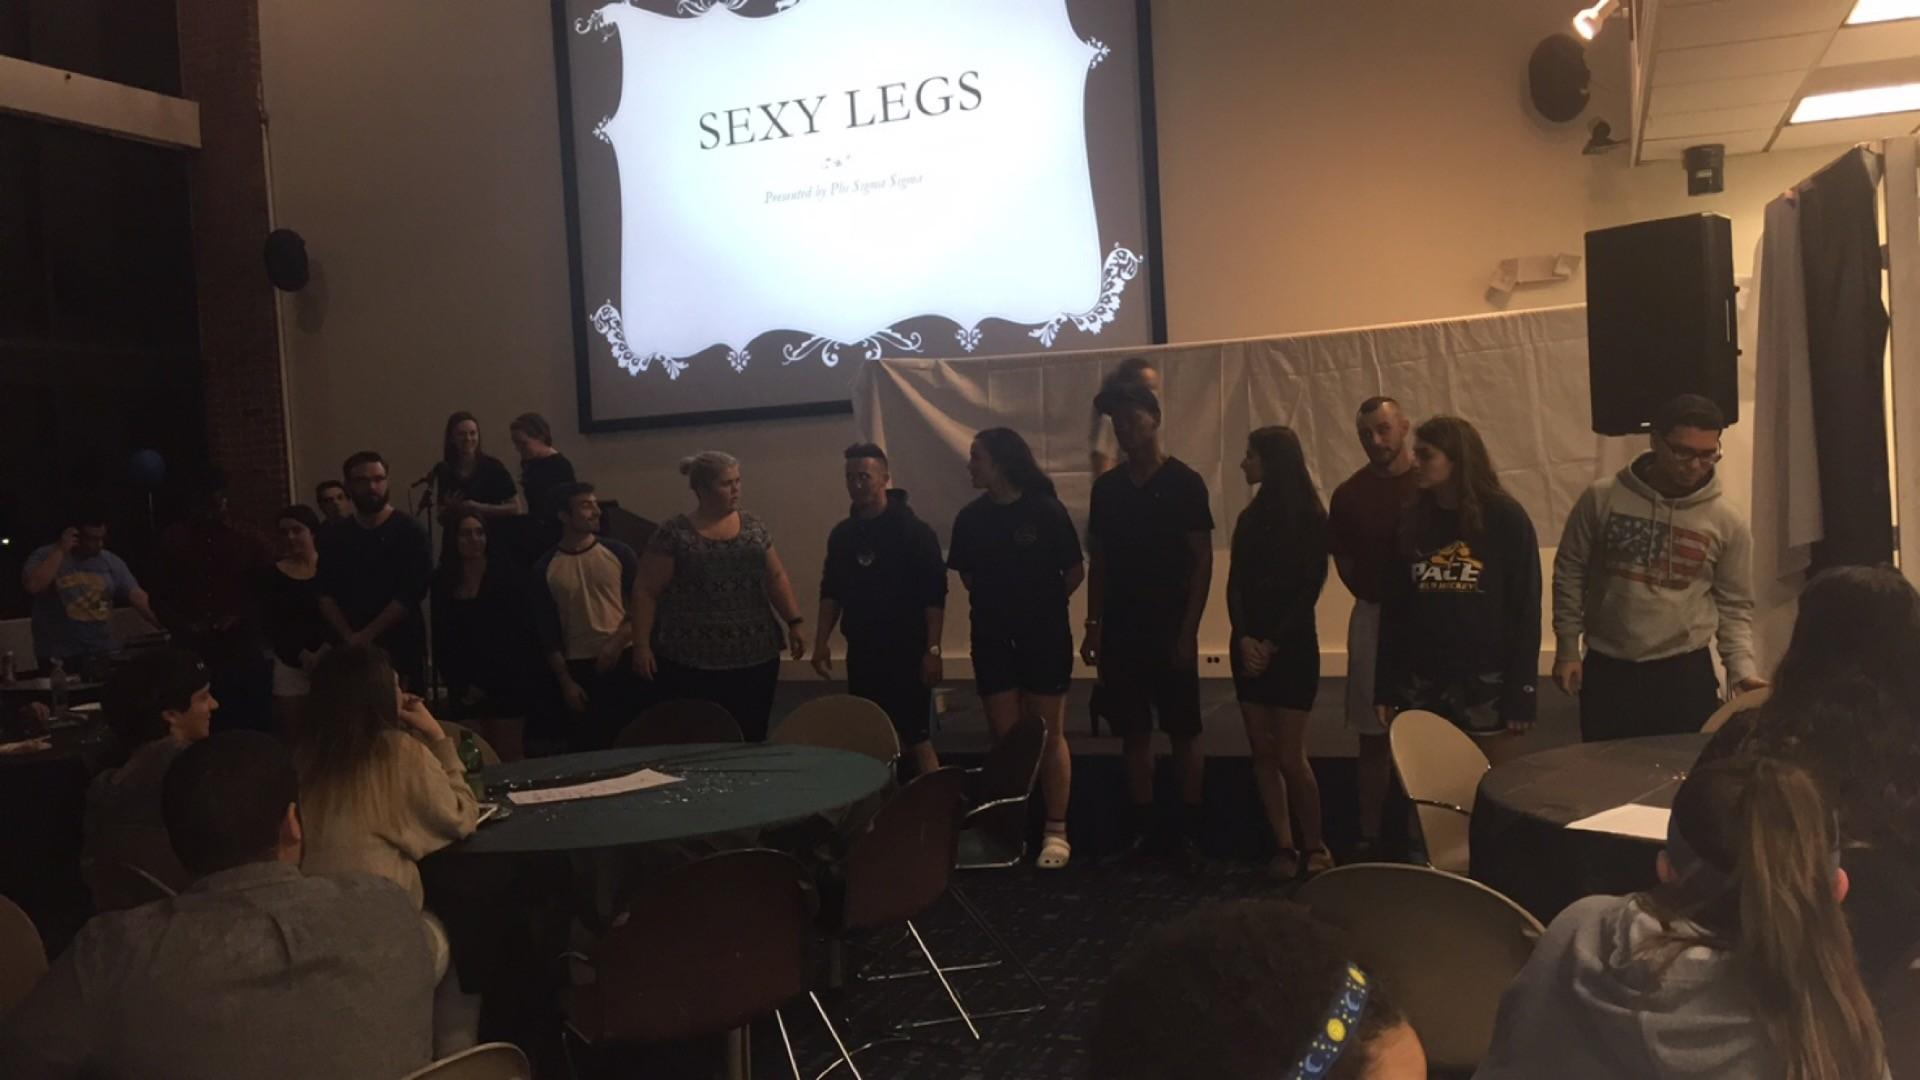 The contestants fully exposed after showing off their sexy legs.